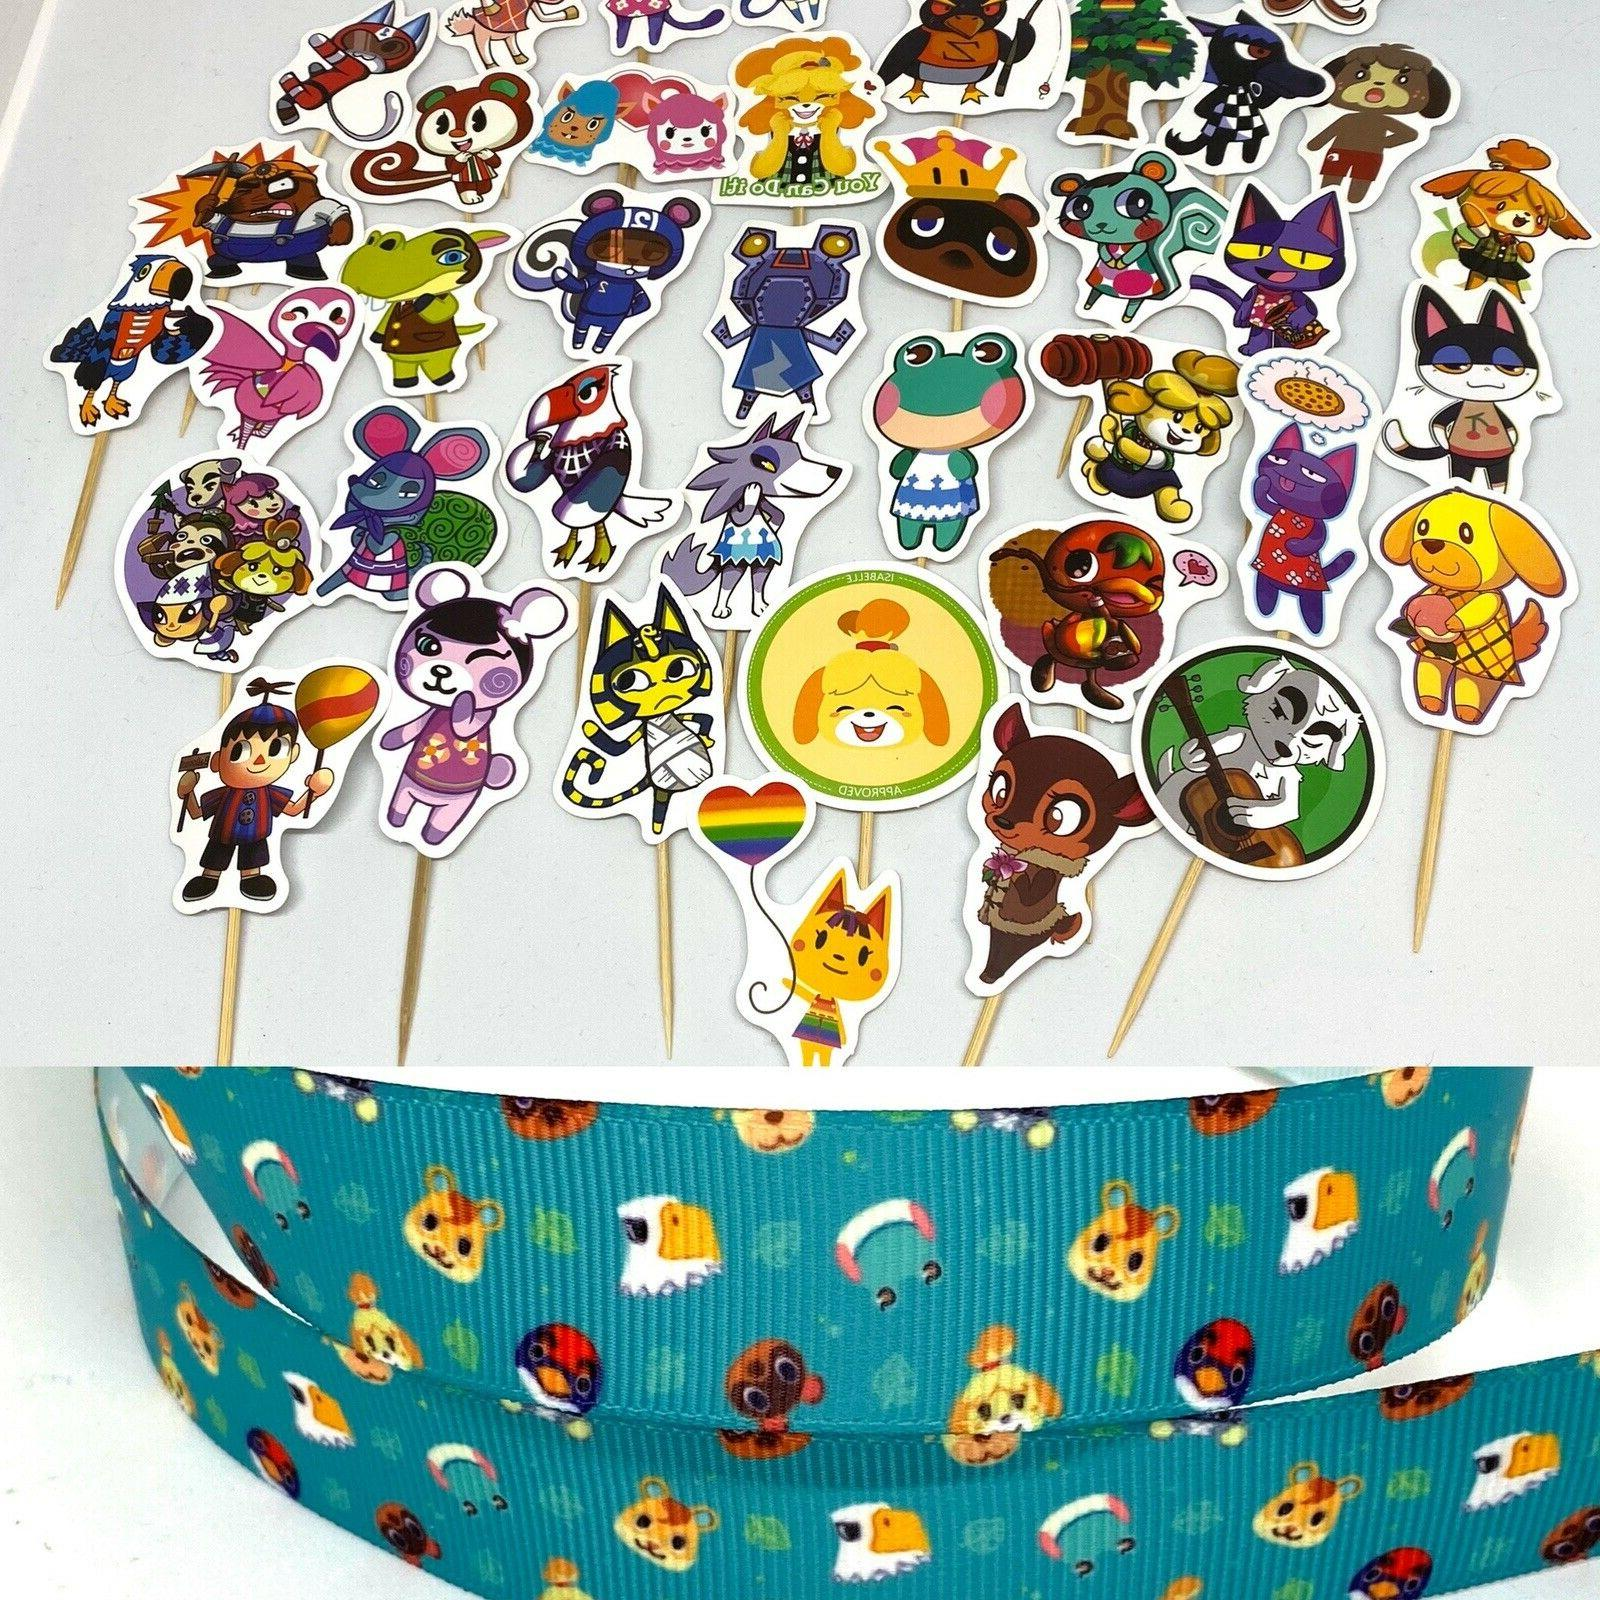 12 animal crossing sticker cupcake topper party